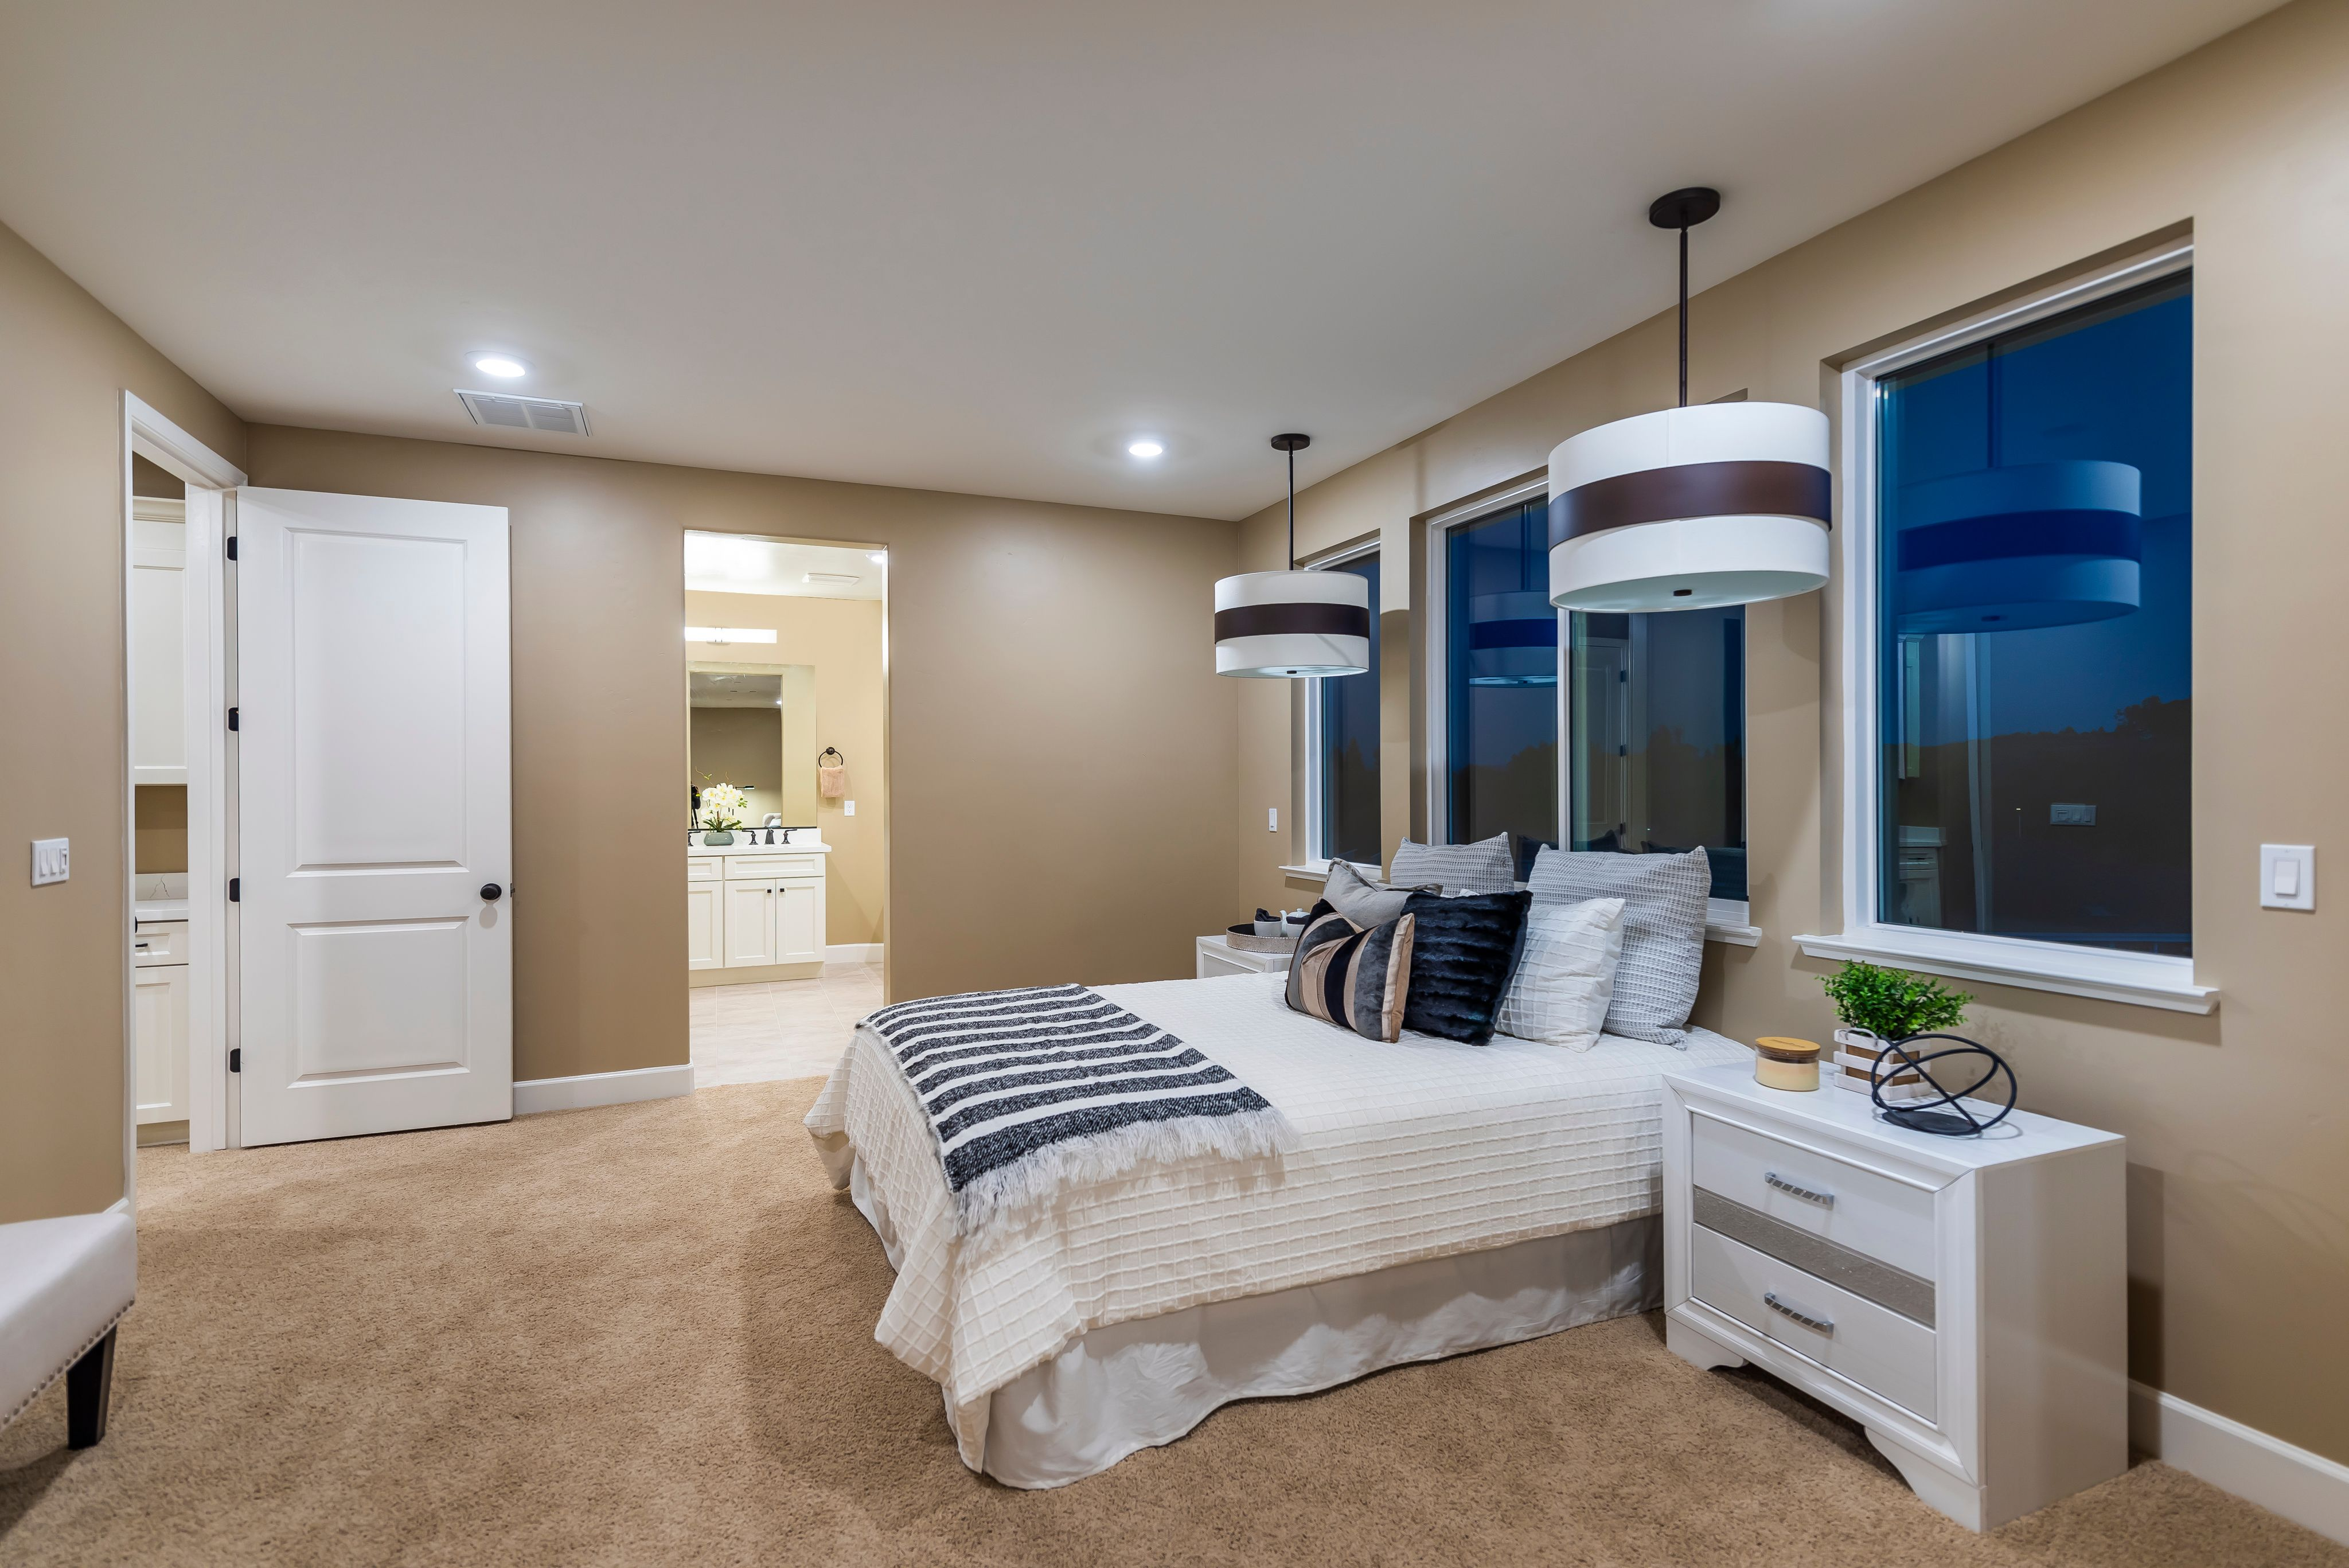 Bedroom featured in the 3668 Fir Ridge Drive By Silvermark Luxury Homes in Santa Rosa, CA